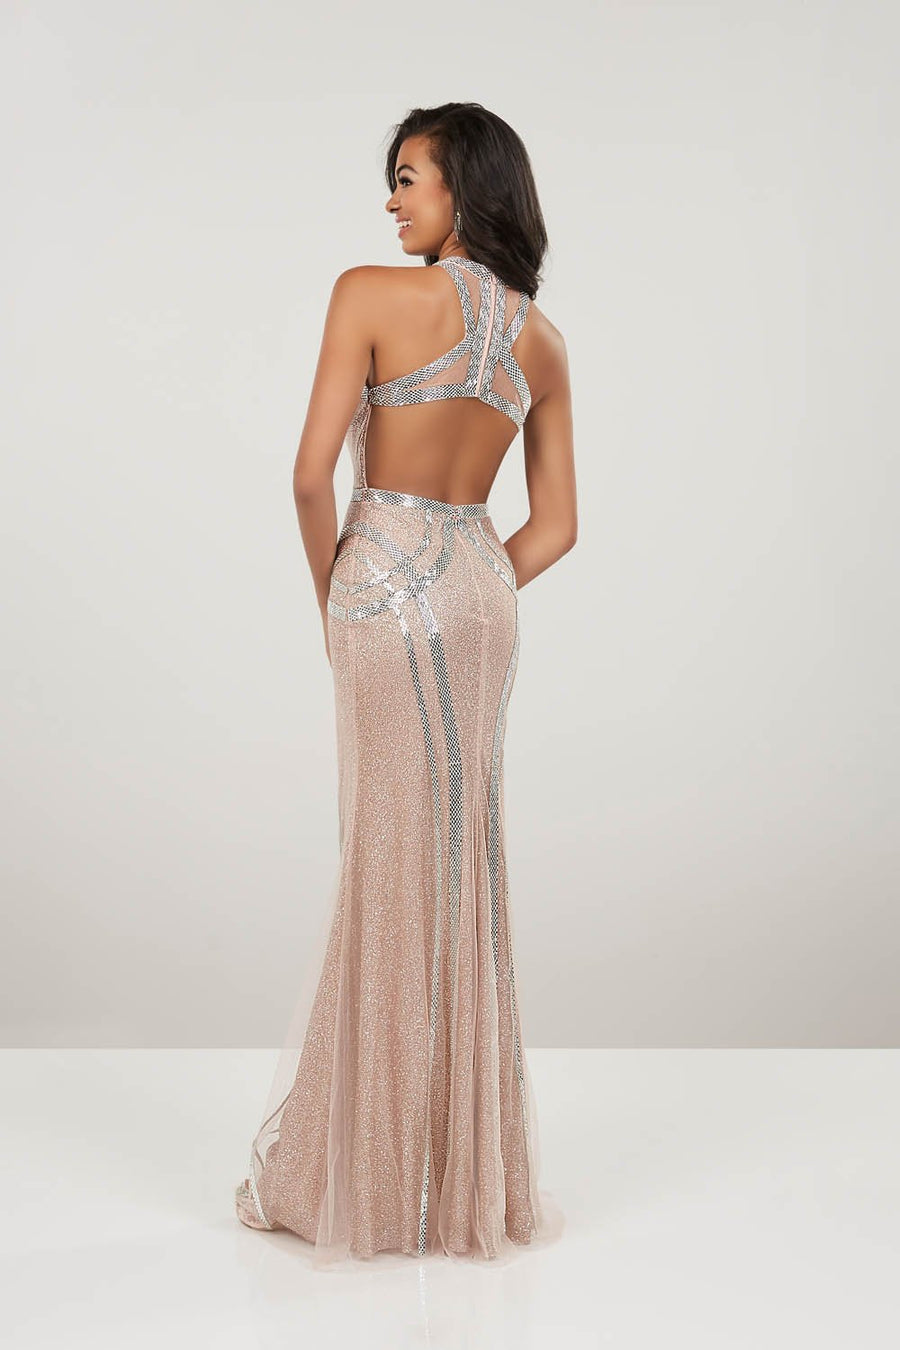 Panoply 14949 prom dress images.  Panoply 14949 is available in these colors: Black, Rose Gold.